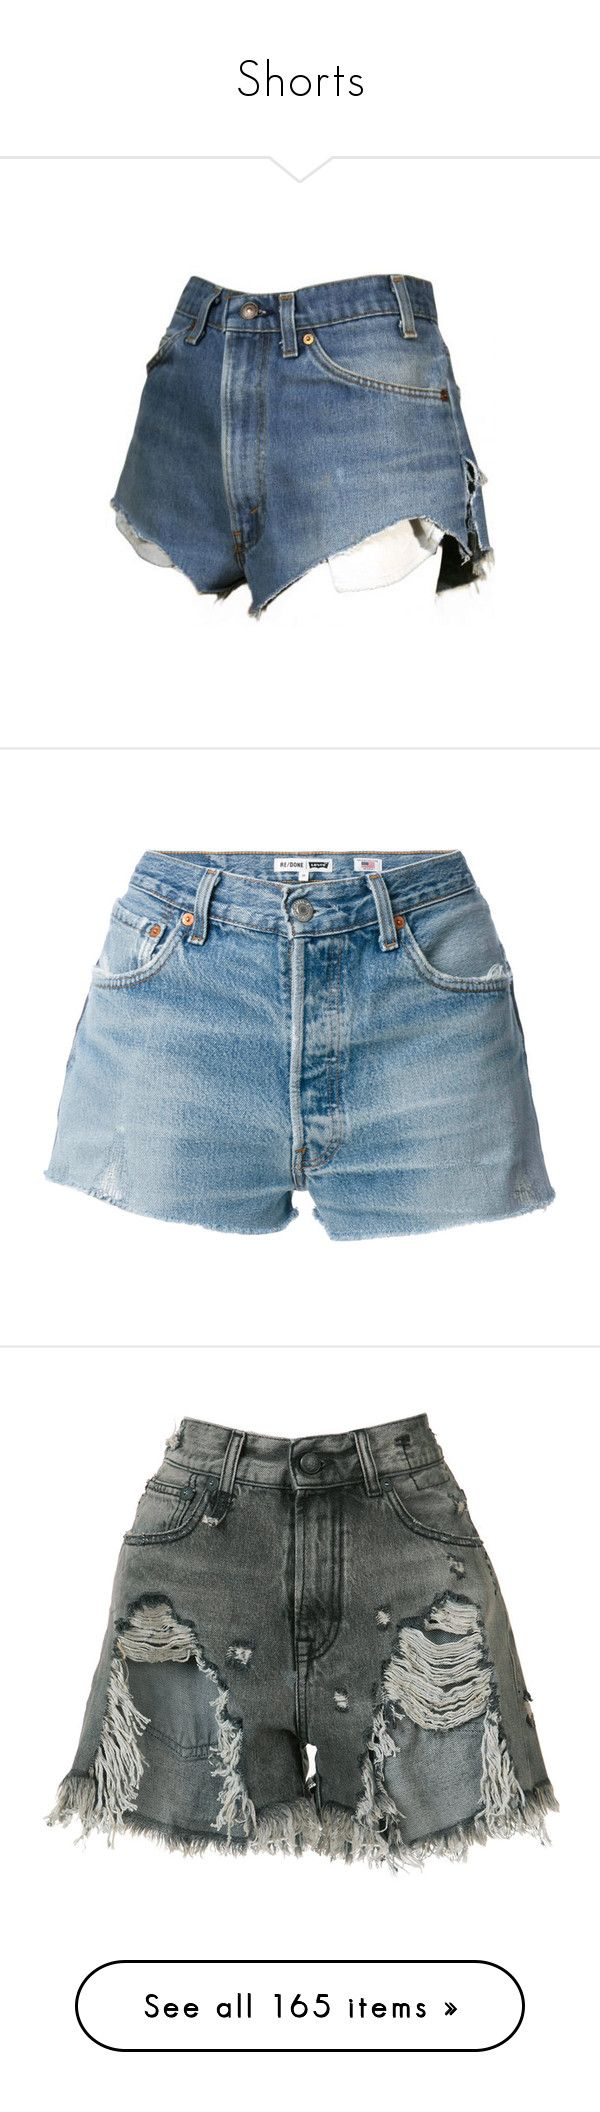 """Shorts"" by styledbyro ❤ liked on Polyvore featuring shorts, bottoms, pants, daisy print shorts, short shorts, daisy shorts, checkerboard shorts, checkered shorts, blue and blue shorts"